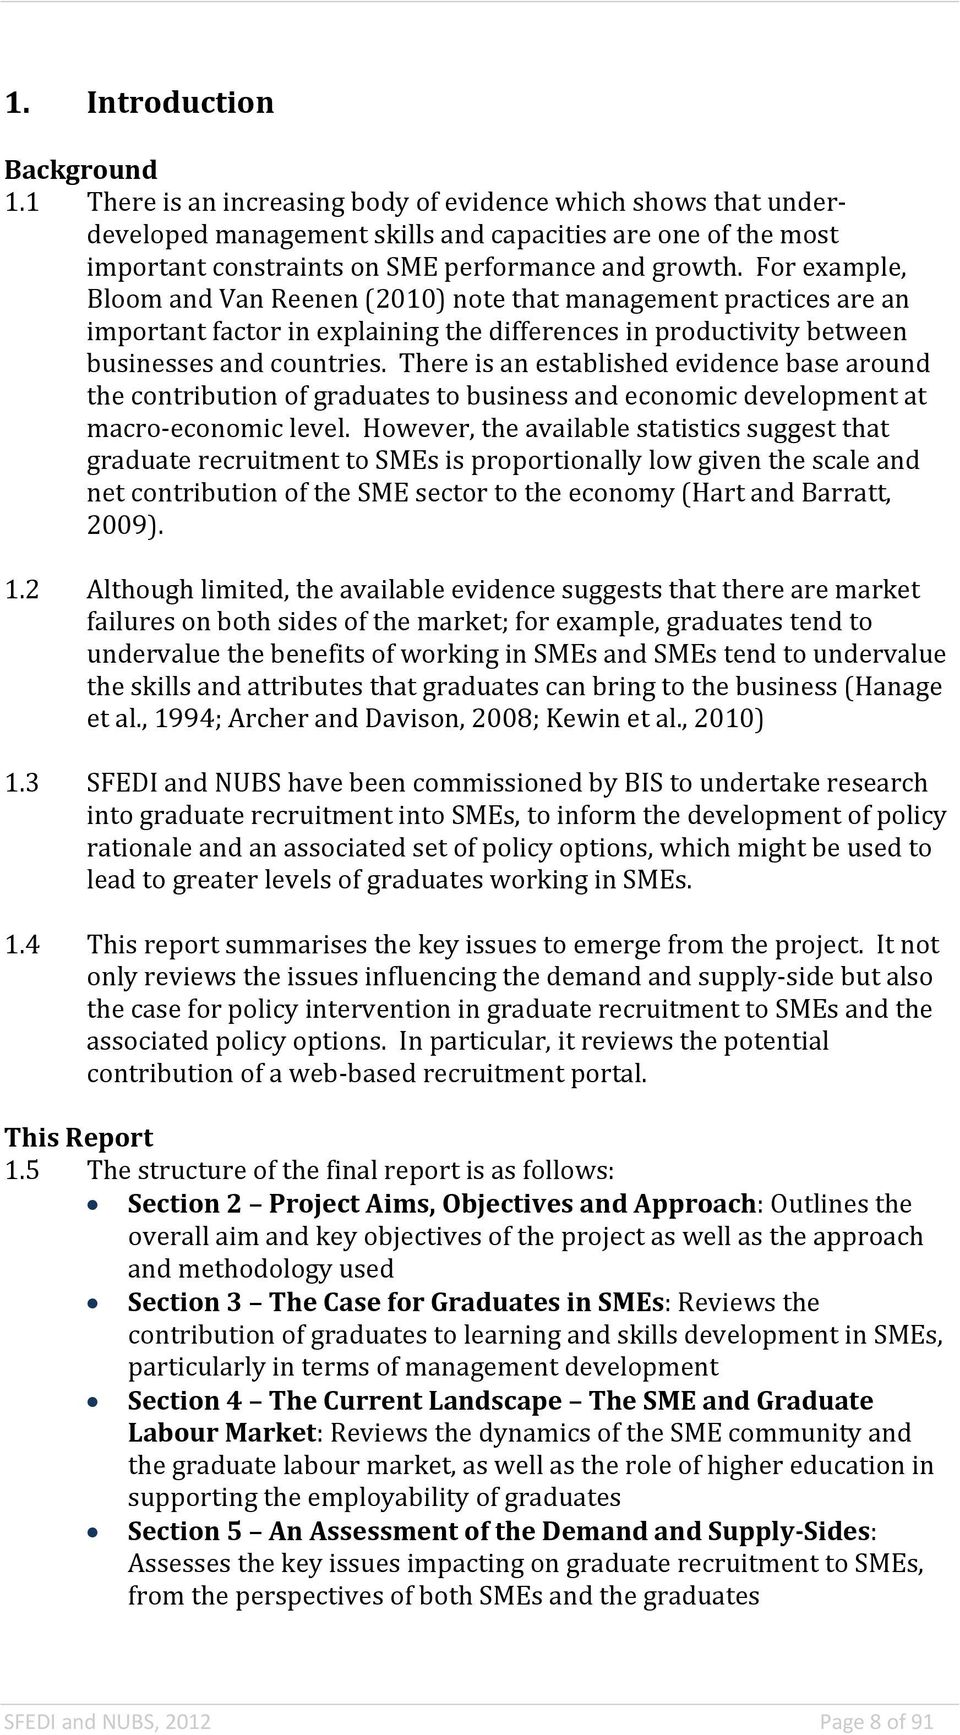 Final Report By Leigh Sear Sfedi And Tracy Scurry Janine Swail Despite Every Effort To Overcomplicate This Projectit Manages For Example Bloom Van Reenen 2010 Note That Management Practices Are An